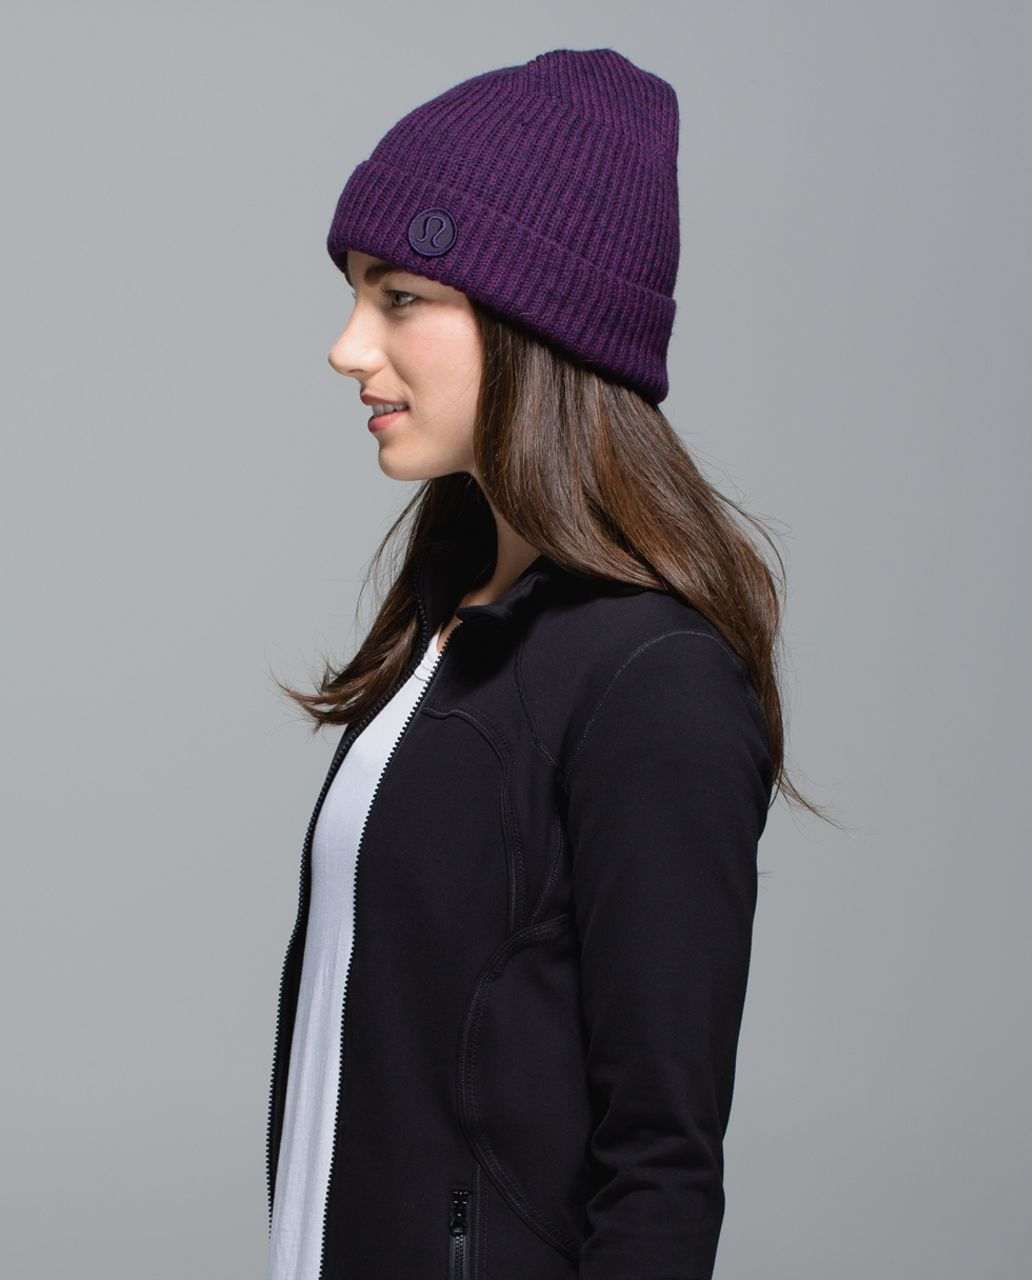 d2c4b2c8 Lululemon Twisted Bliss Toque - Berry Yum Yum / Black Grape - lulu fanatics